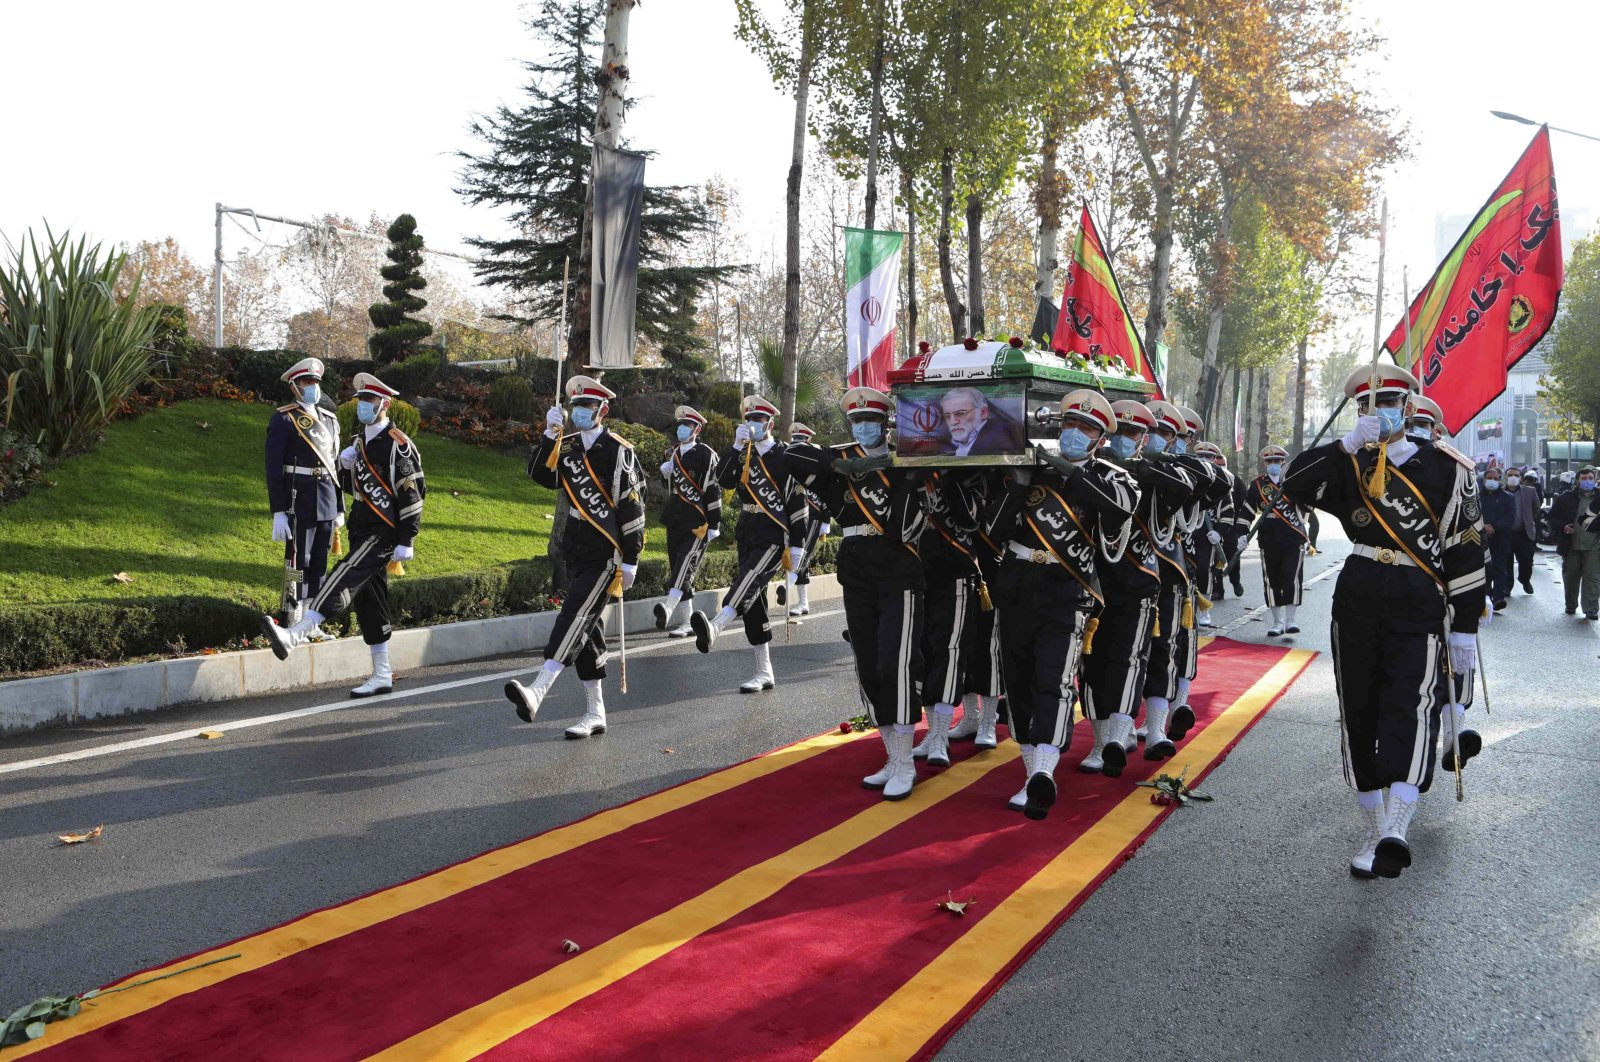 Iranian military personnel carry the flag-draped coffin of assassinated nuclear scientist Mohsen Fakhrizadeh, in a funeral ceremony, Tehran, Iran, Nov. 30, 2020. (AP Photo)